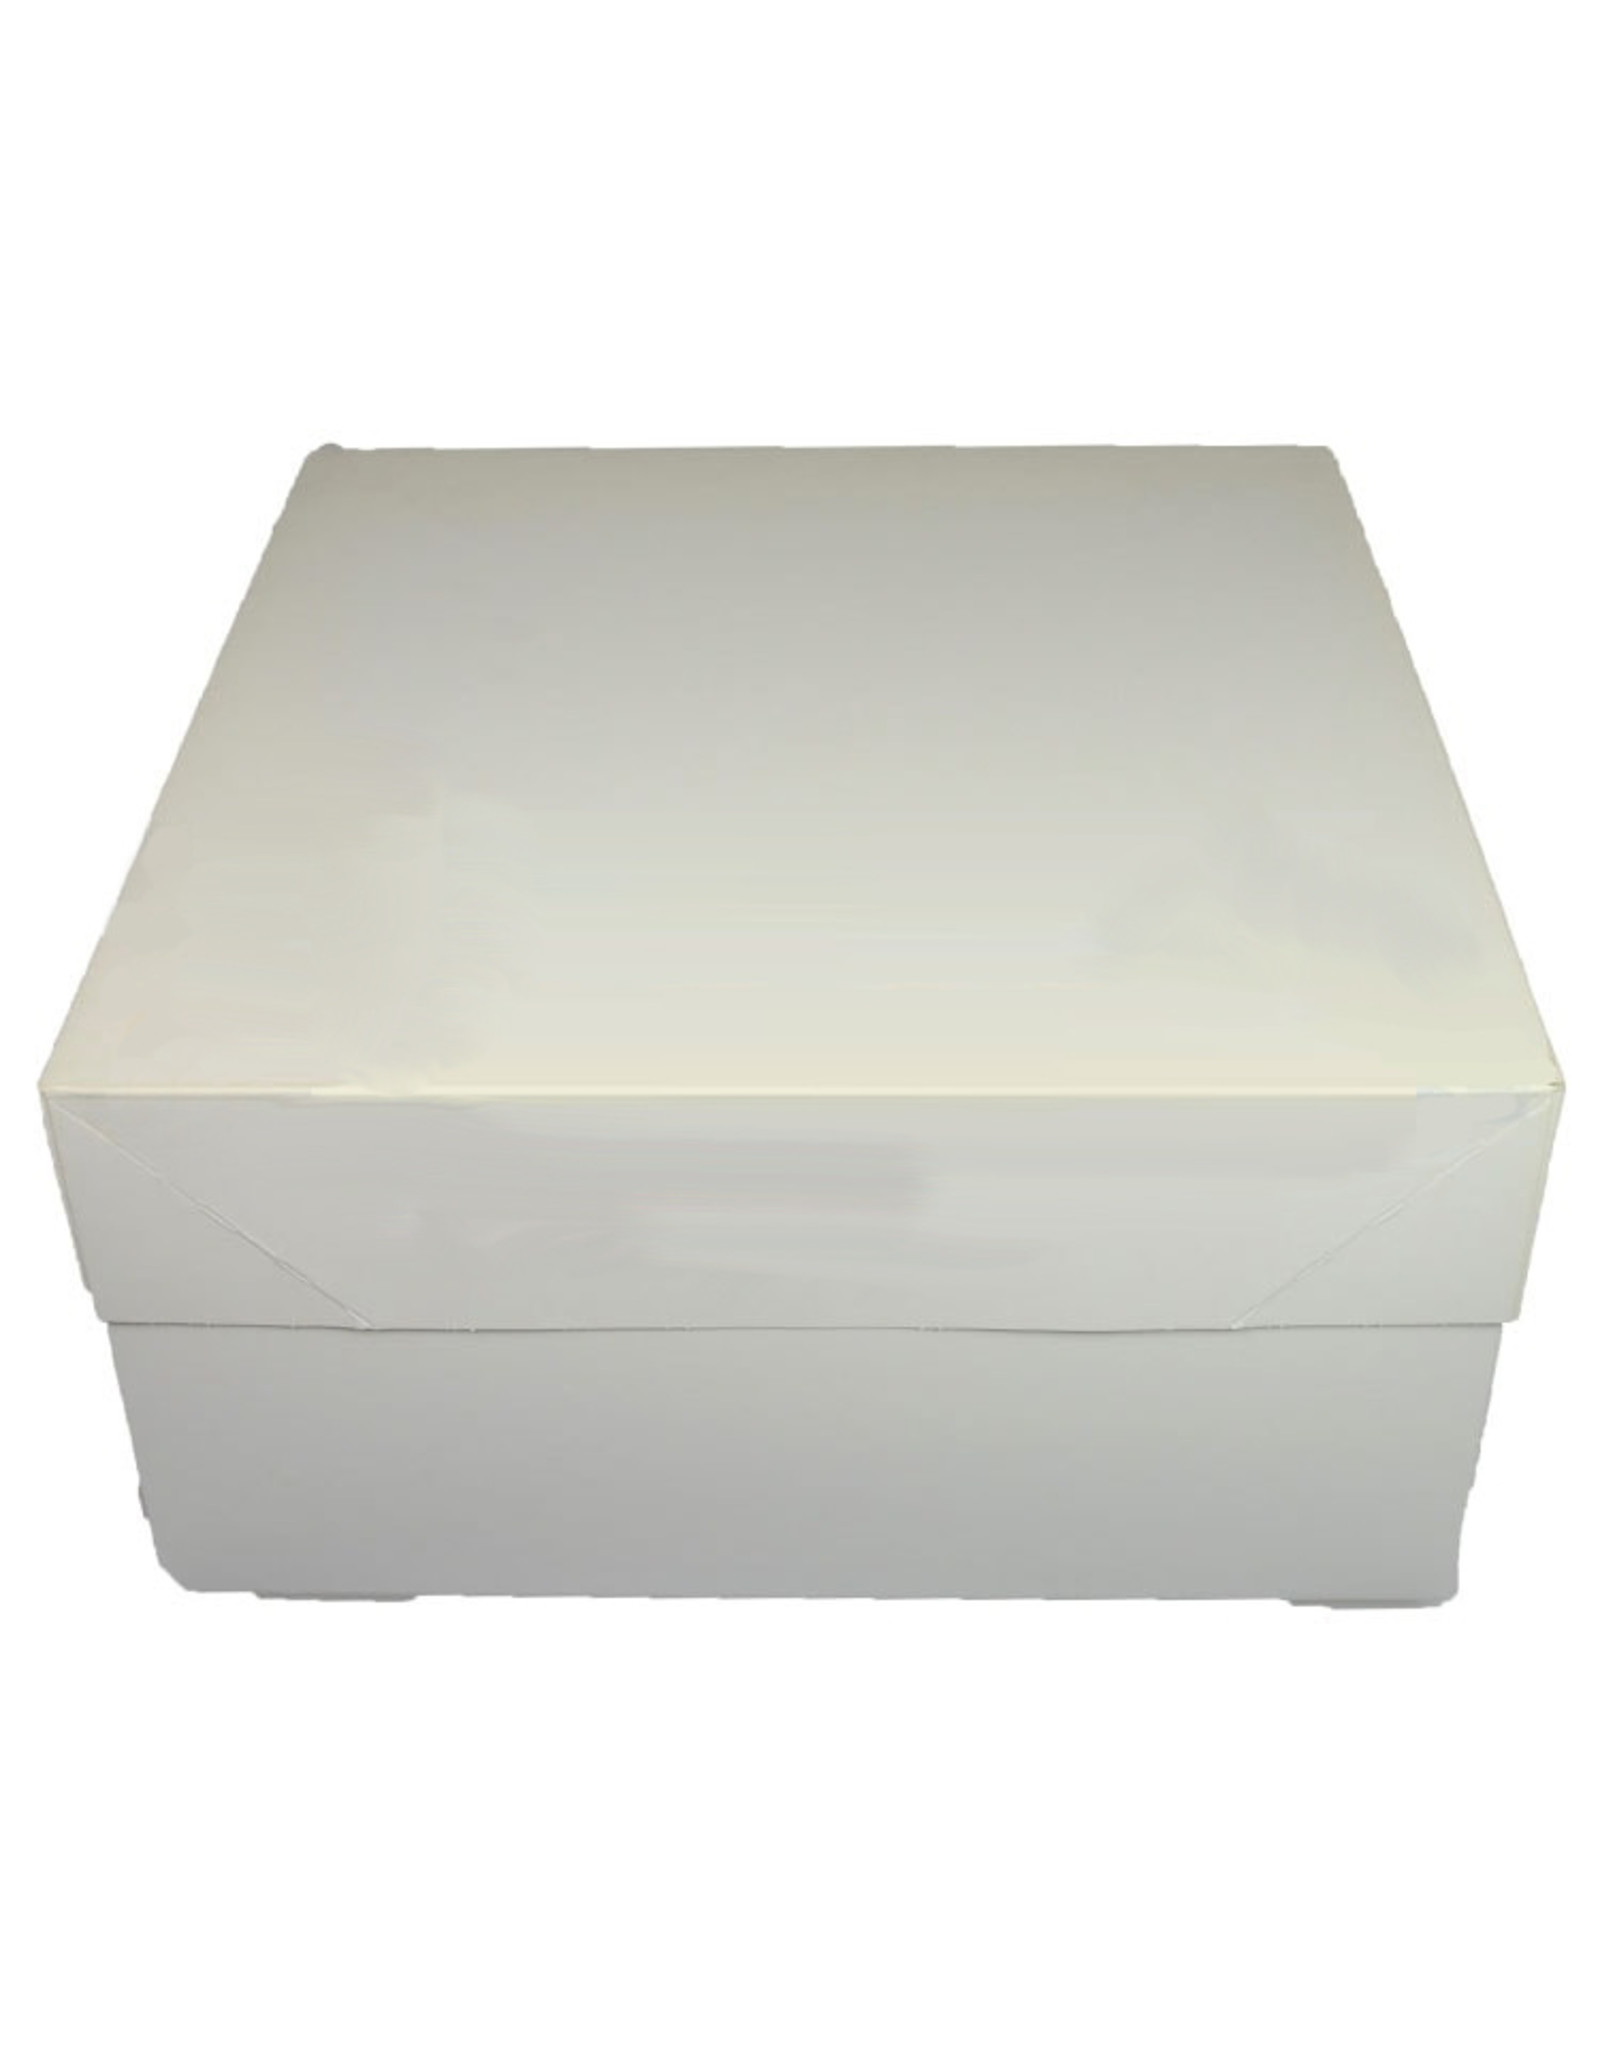 Folding 2 piece cakebox - 25 x 25 x 15 cm (50 pieces)